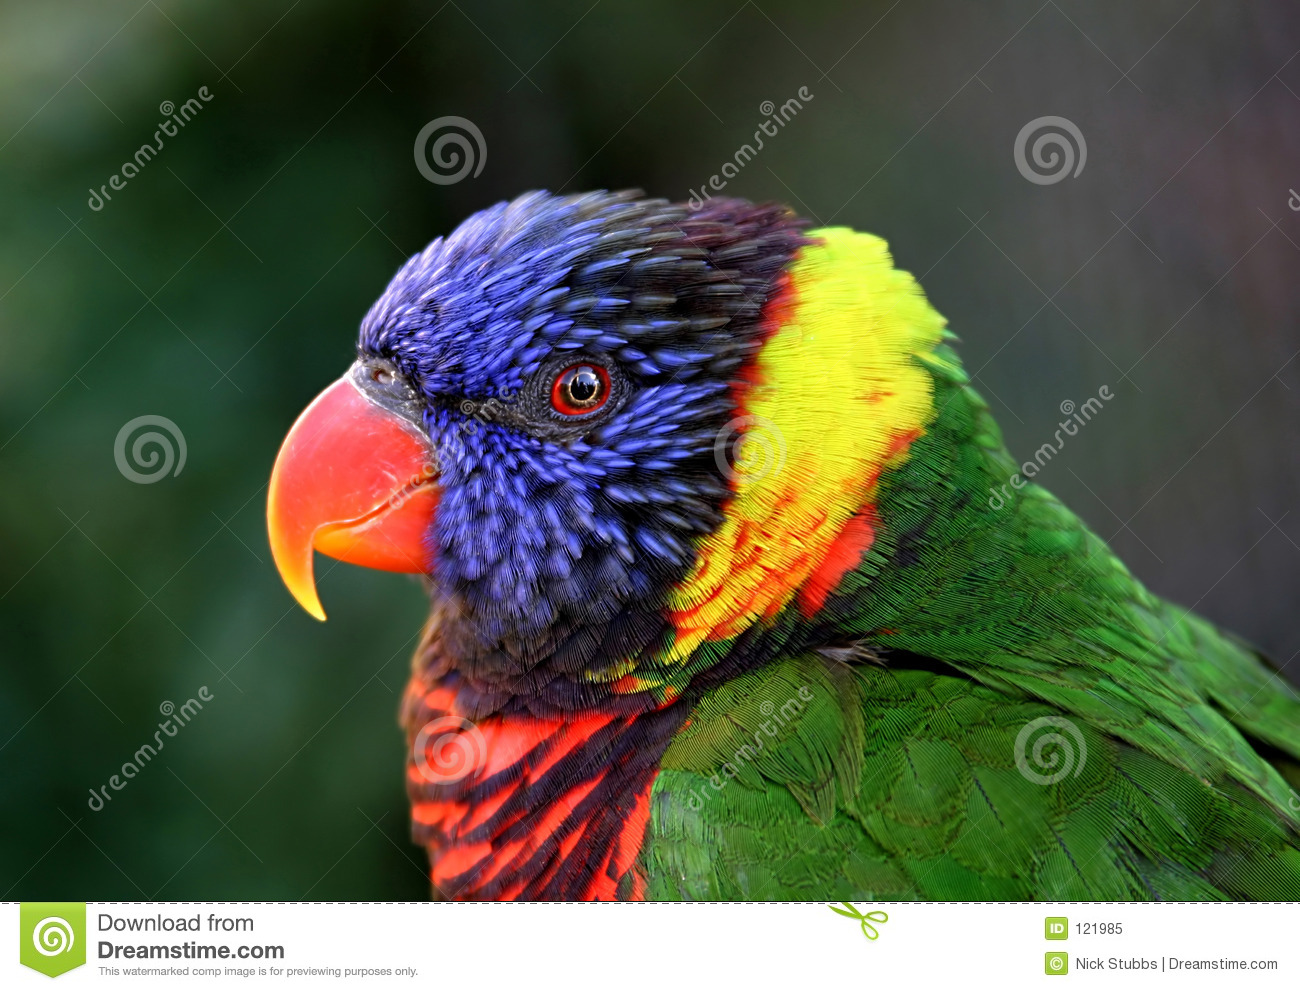 Green Parrot Wallpaper 3d Beautiful Clean Clear Shot Of Colorful Parrot Royalty